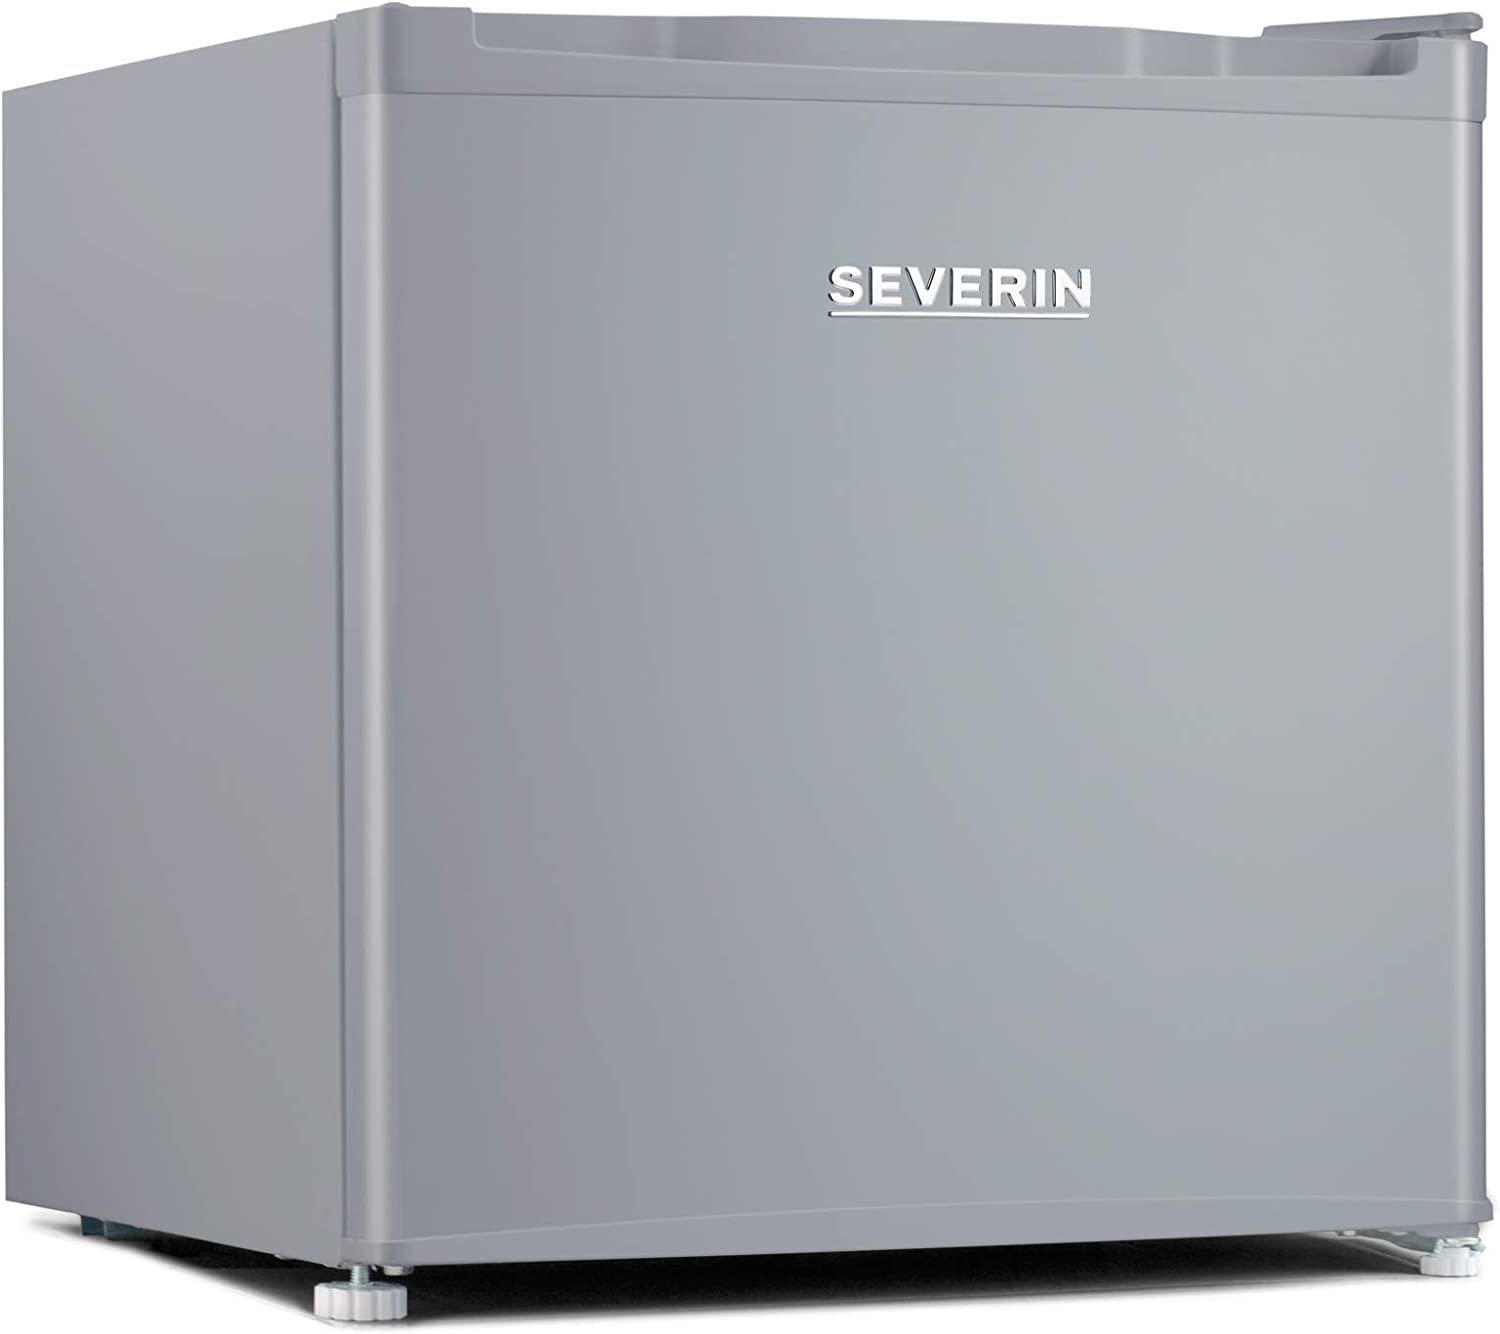 SEVERIN KB 8874, Nevera, Minibar, 46 L, Plateado: Amazon.es ...